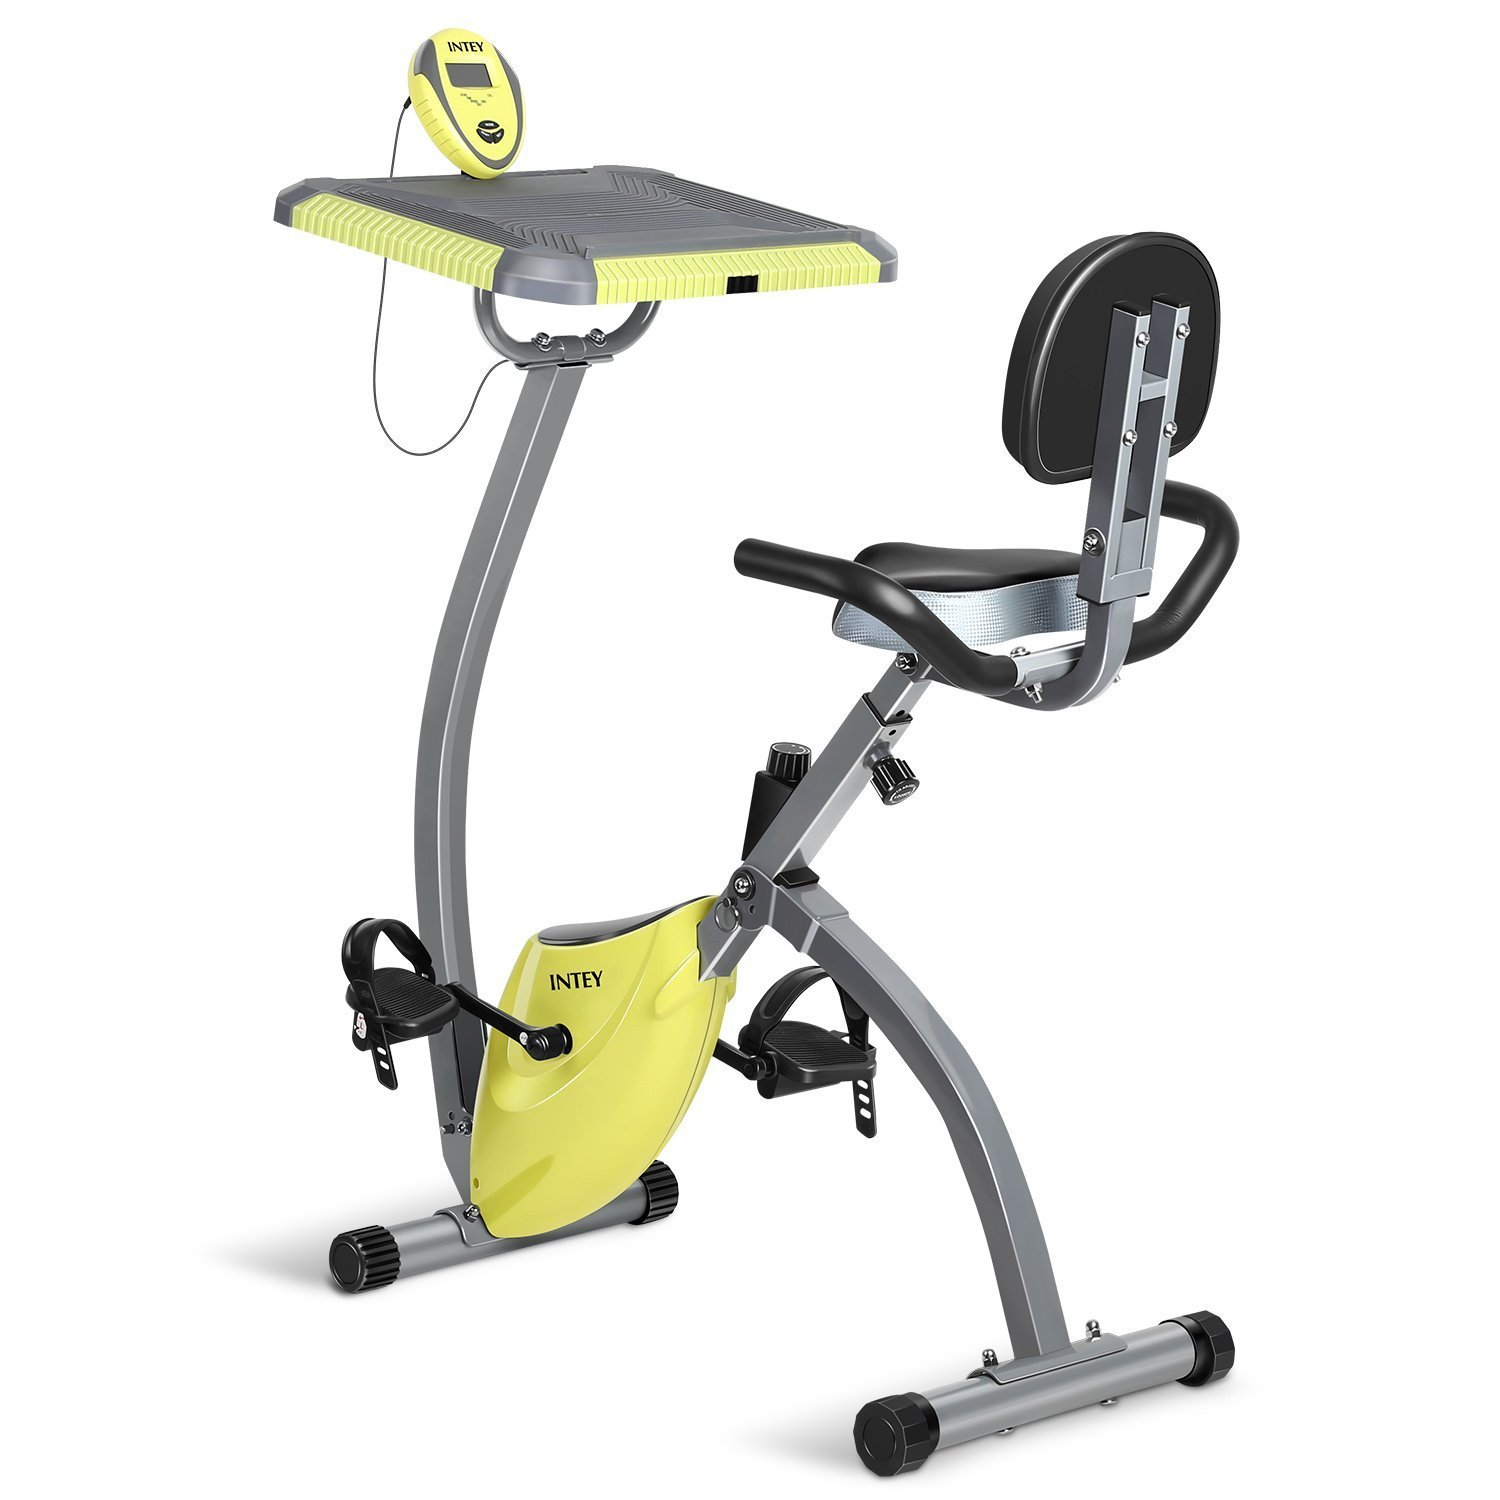 pedal kc multi bicycle chair products elizabeth school supplies desk station richards